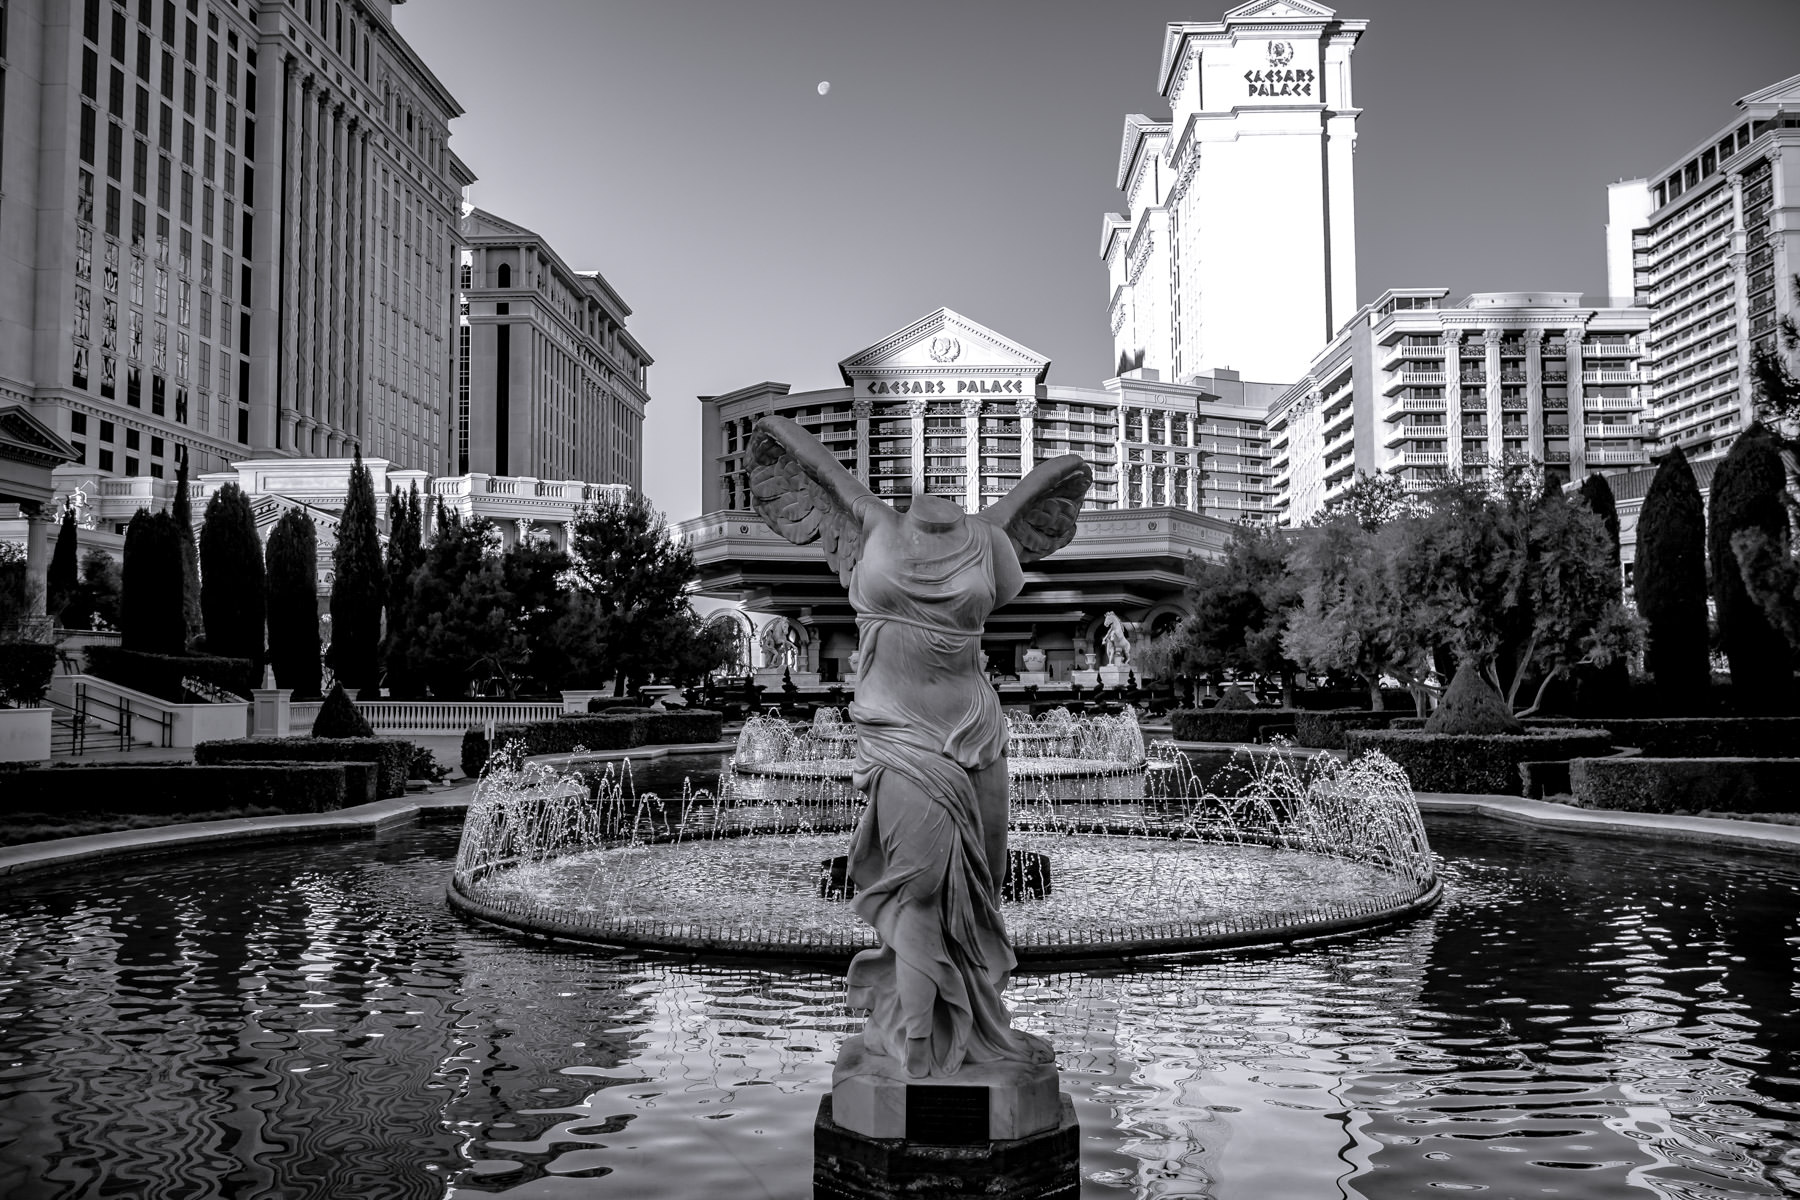 A headless statue sits in front of Las Vegas' Caesars Palace.